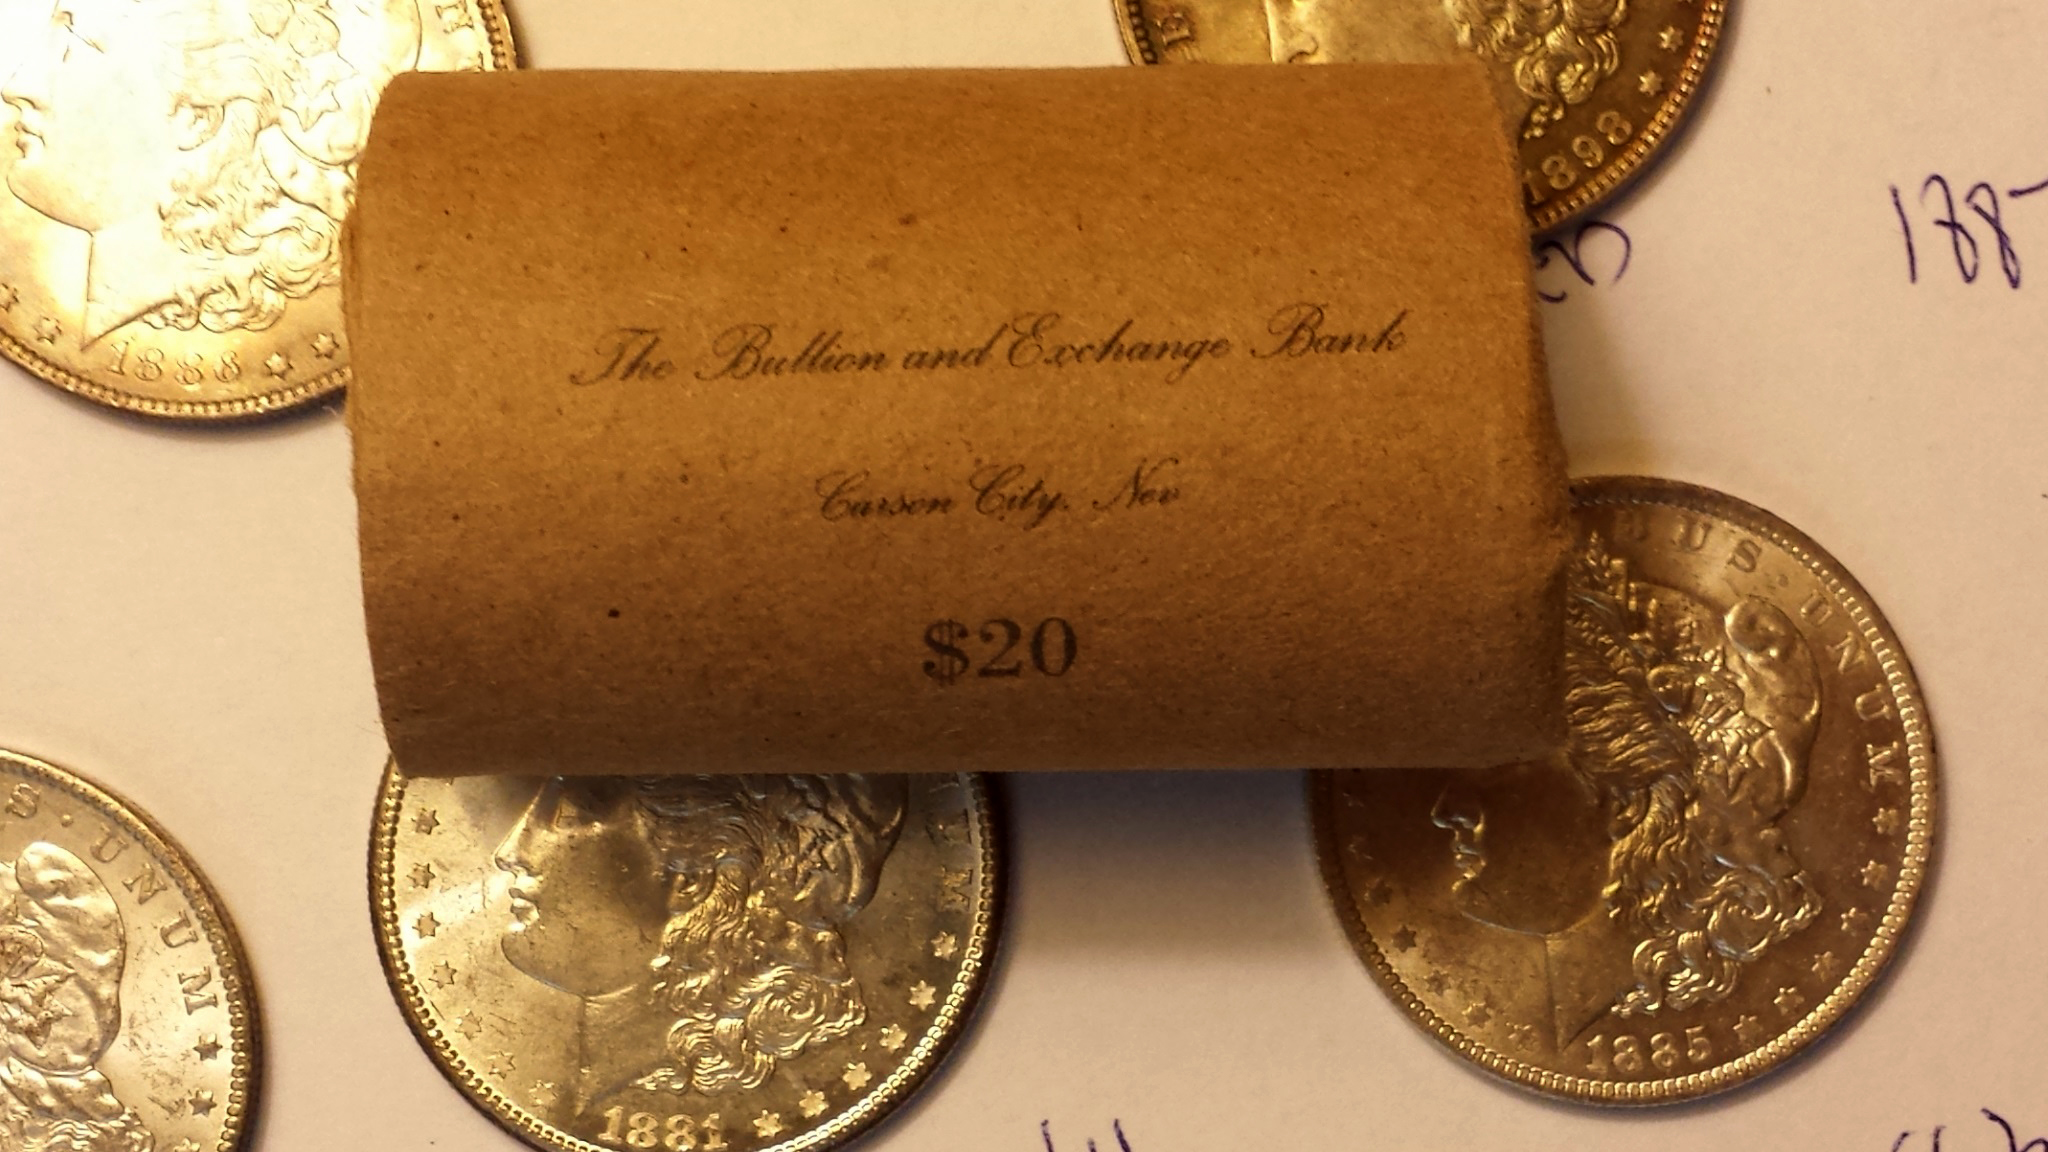 Gambling on a Morgan dollar roll: Inside Coin World